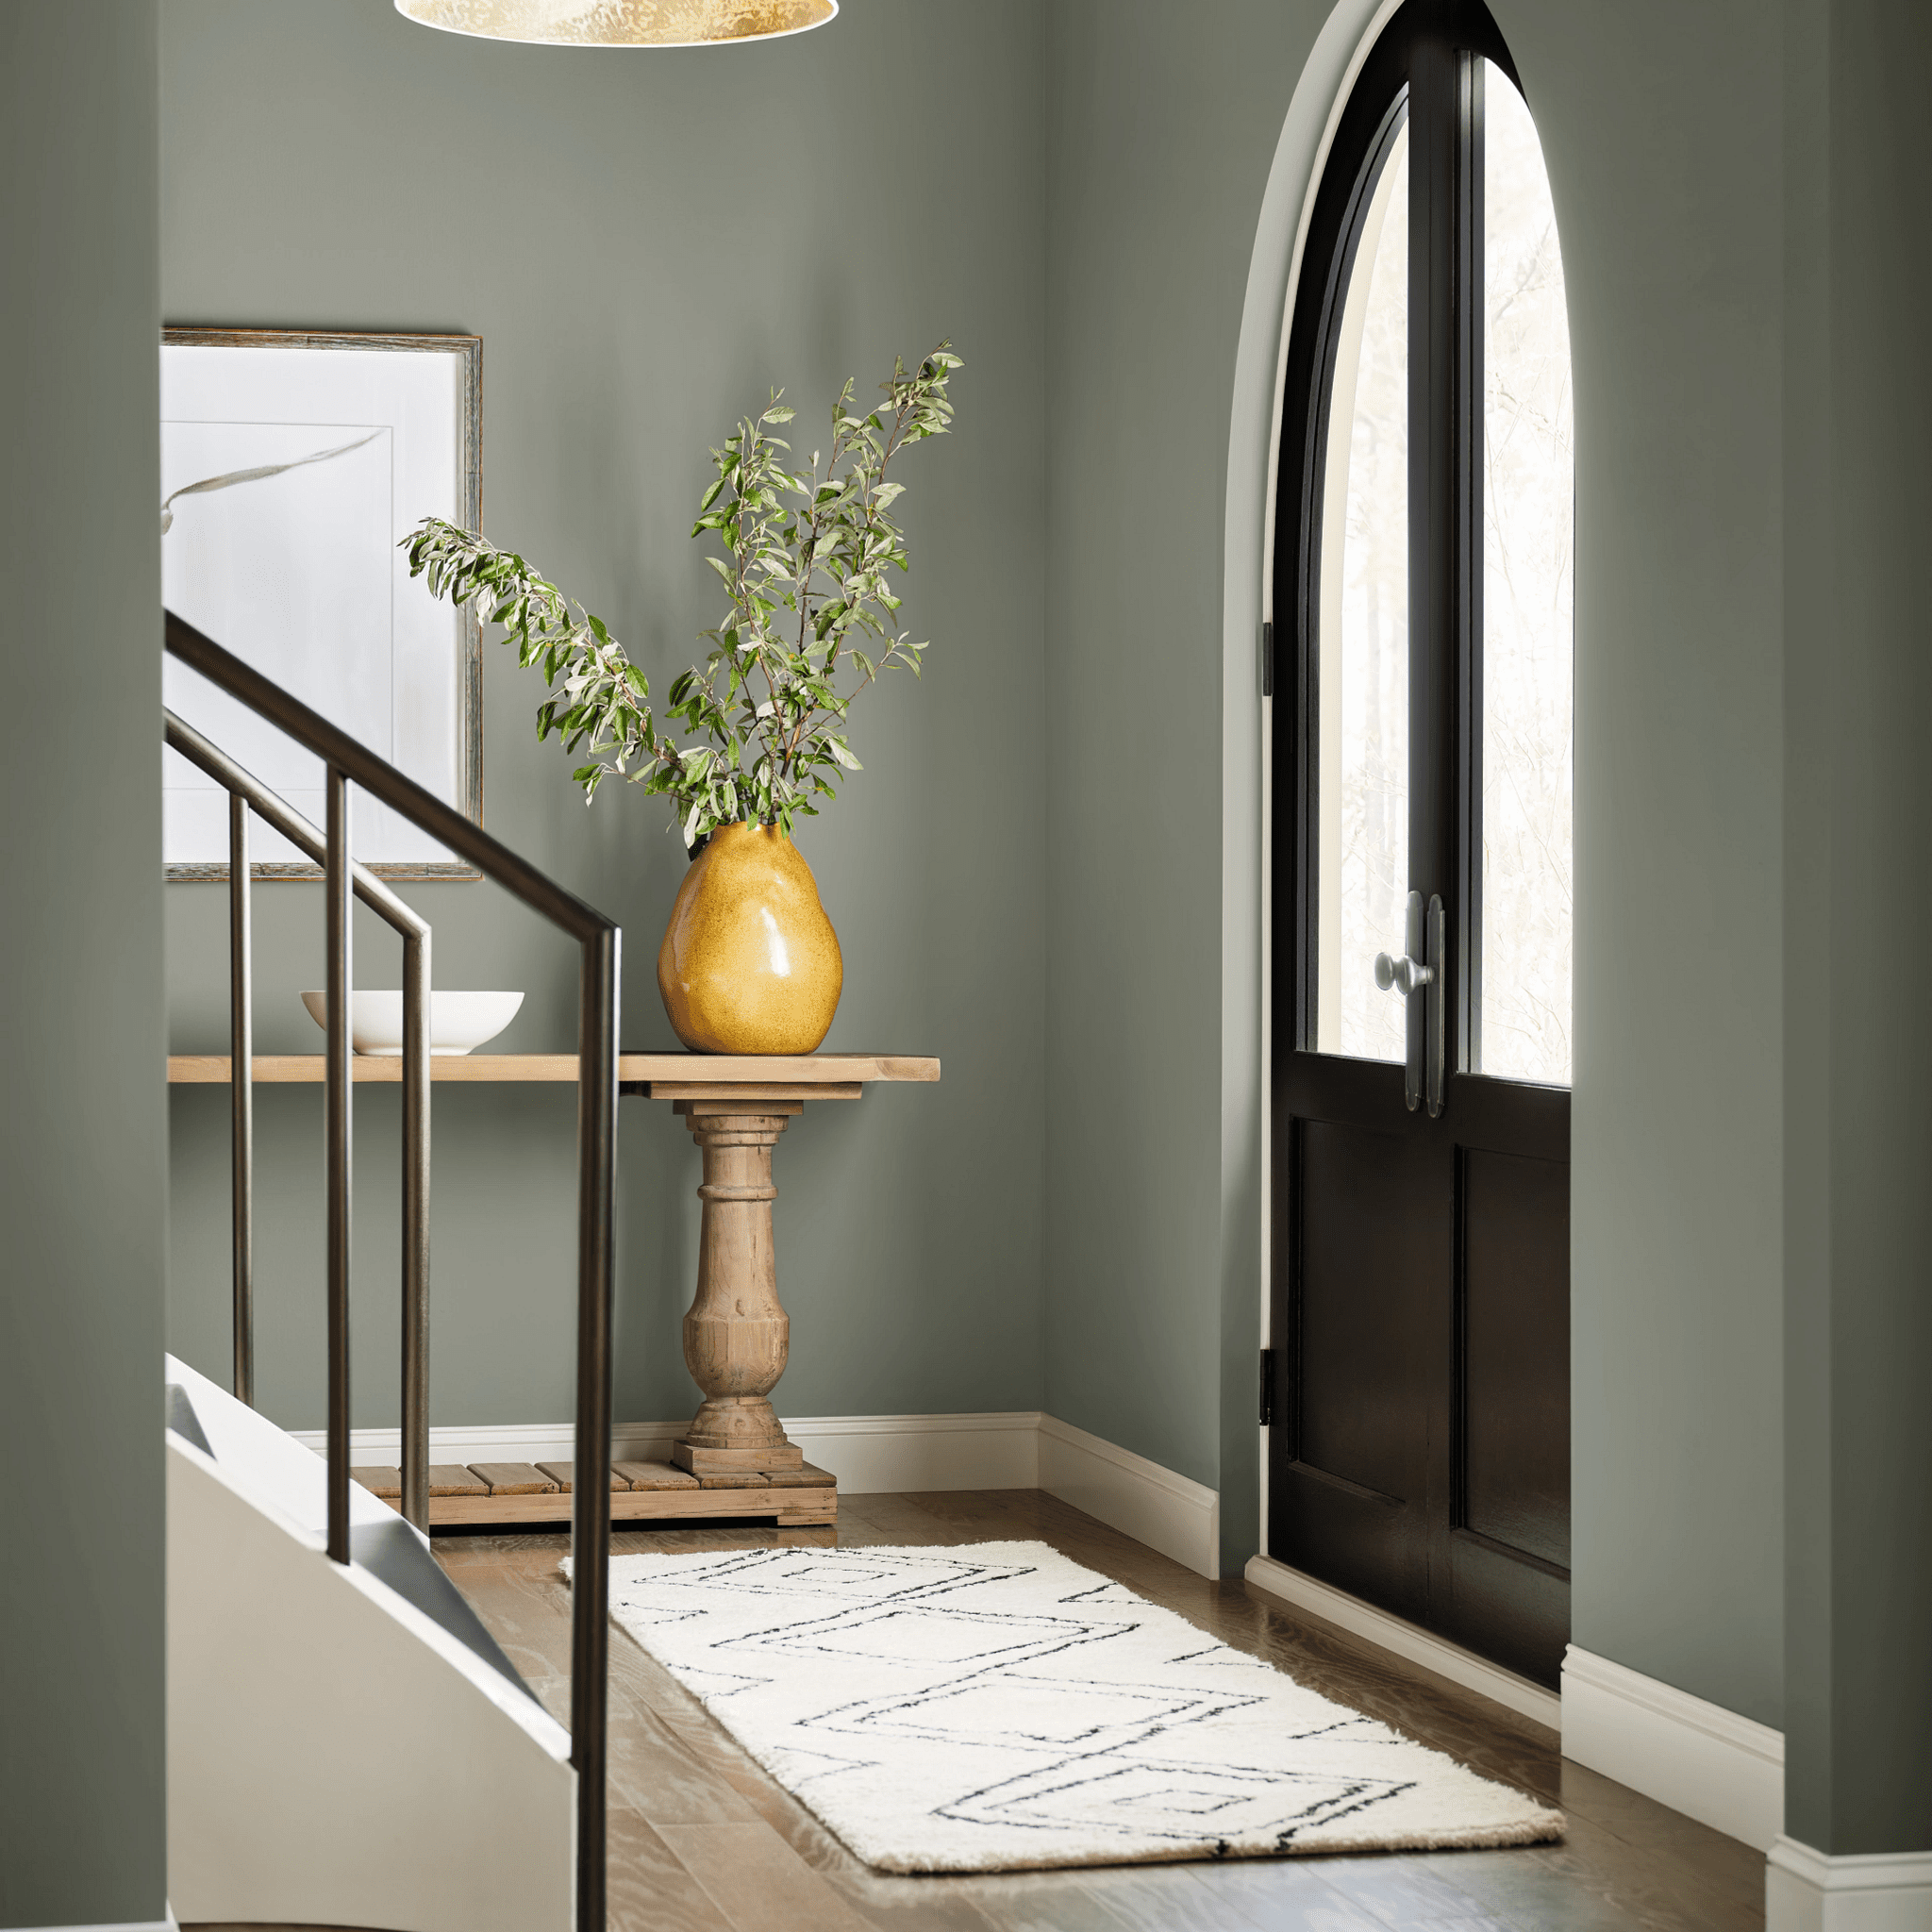 Sherwin-Williams Color of the Year 2022 Evergreen Fog in entryway